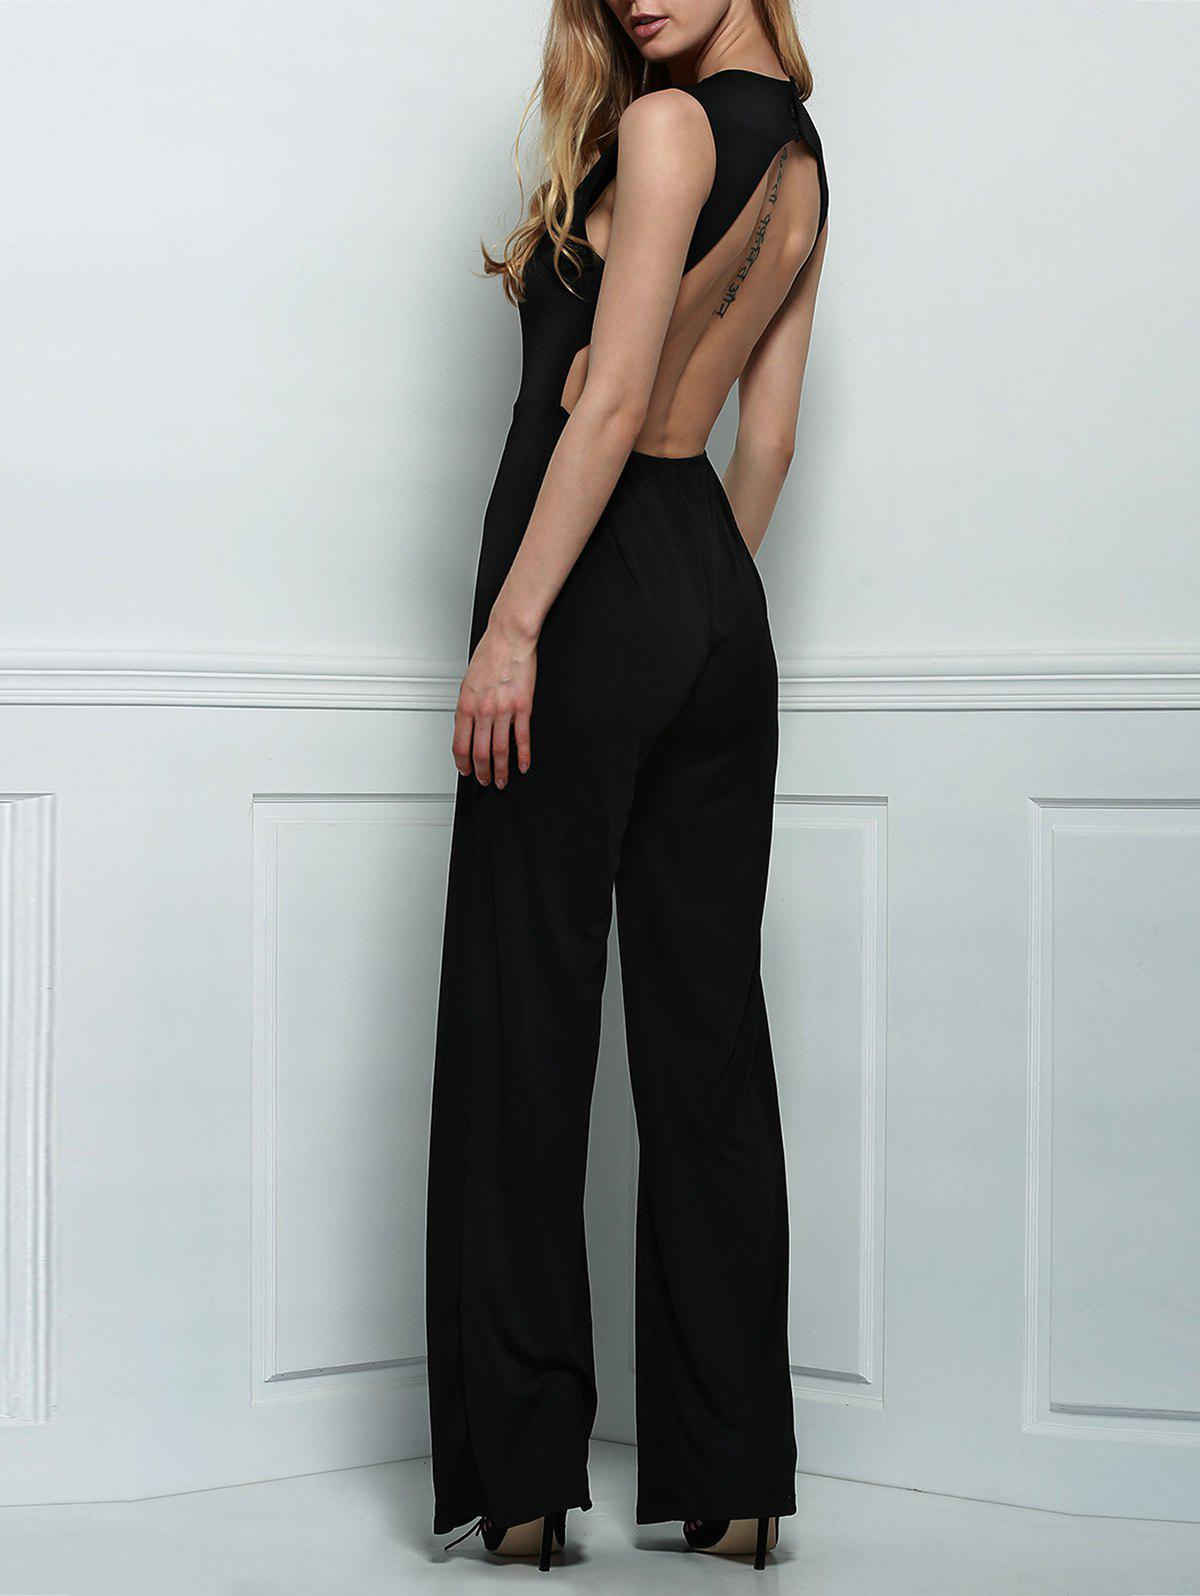 Sexy Plunging Neck Sleeveless Backless Women's Black Jumpsuit